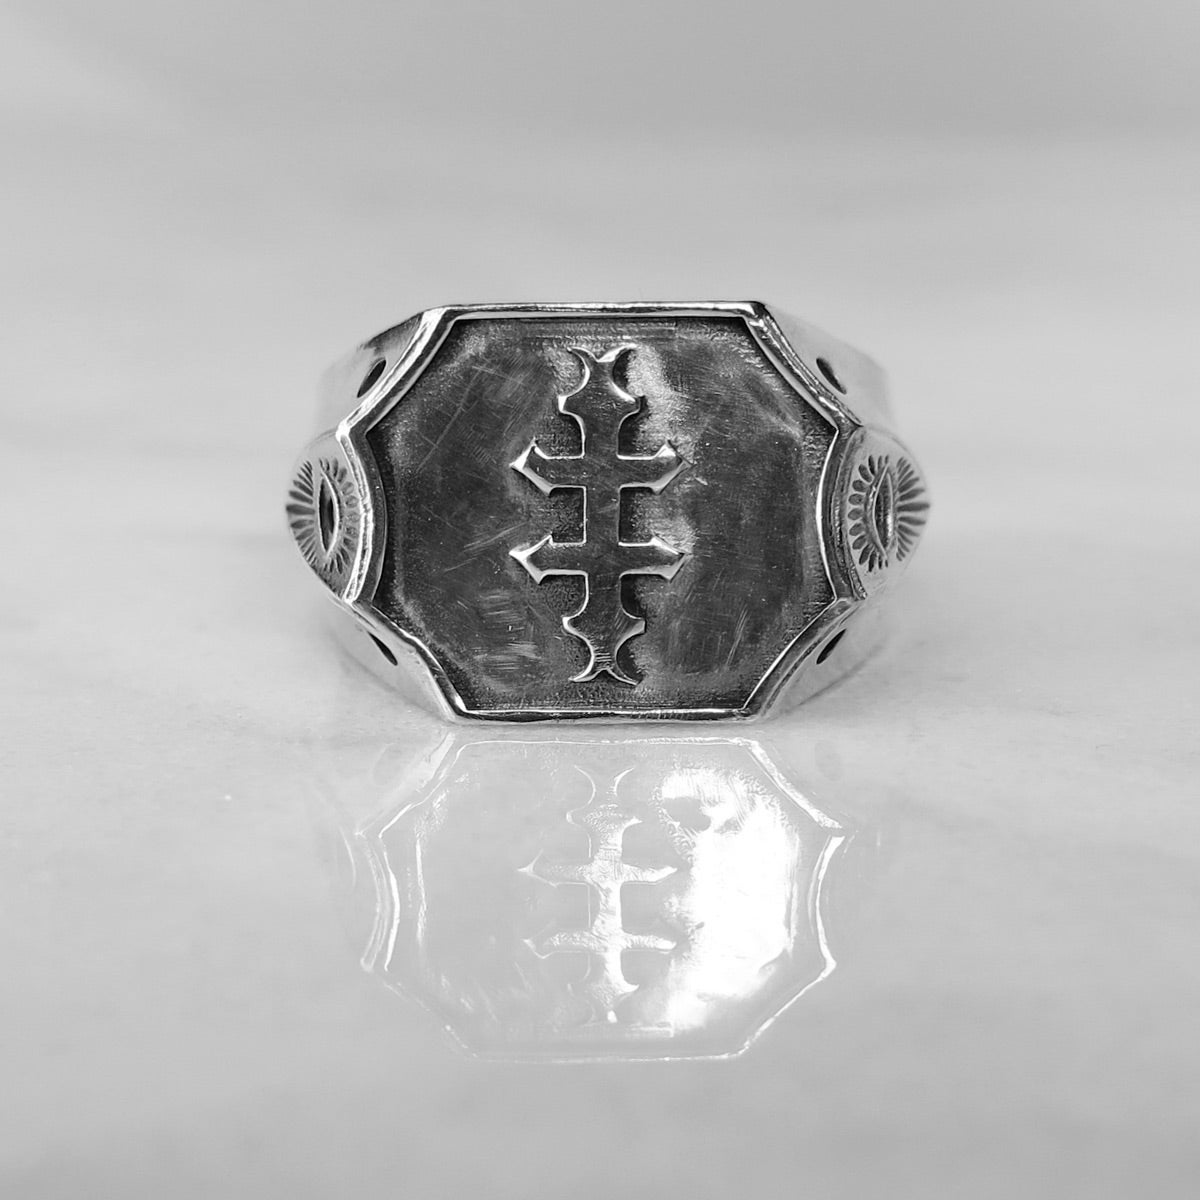 Image of Order of the Conjoined Cross Signet Ring